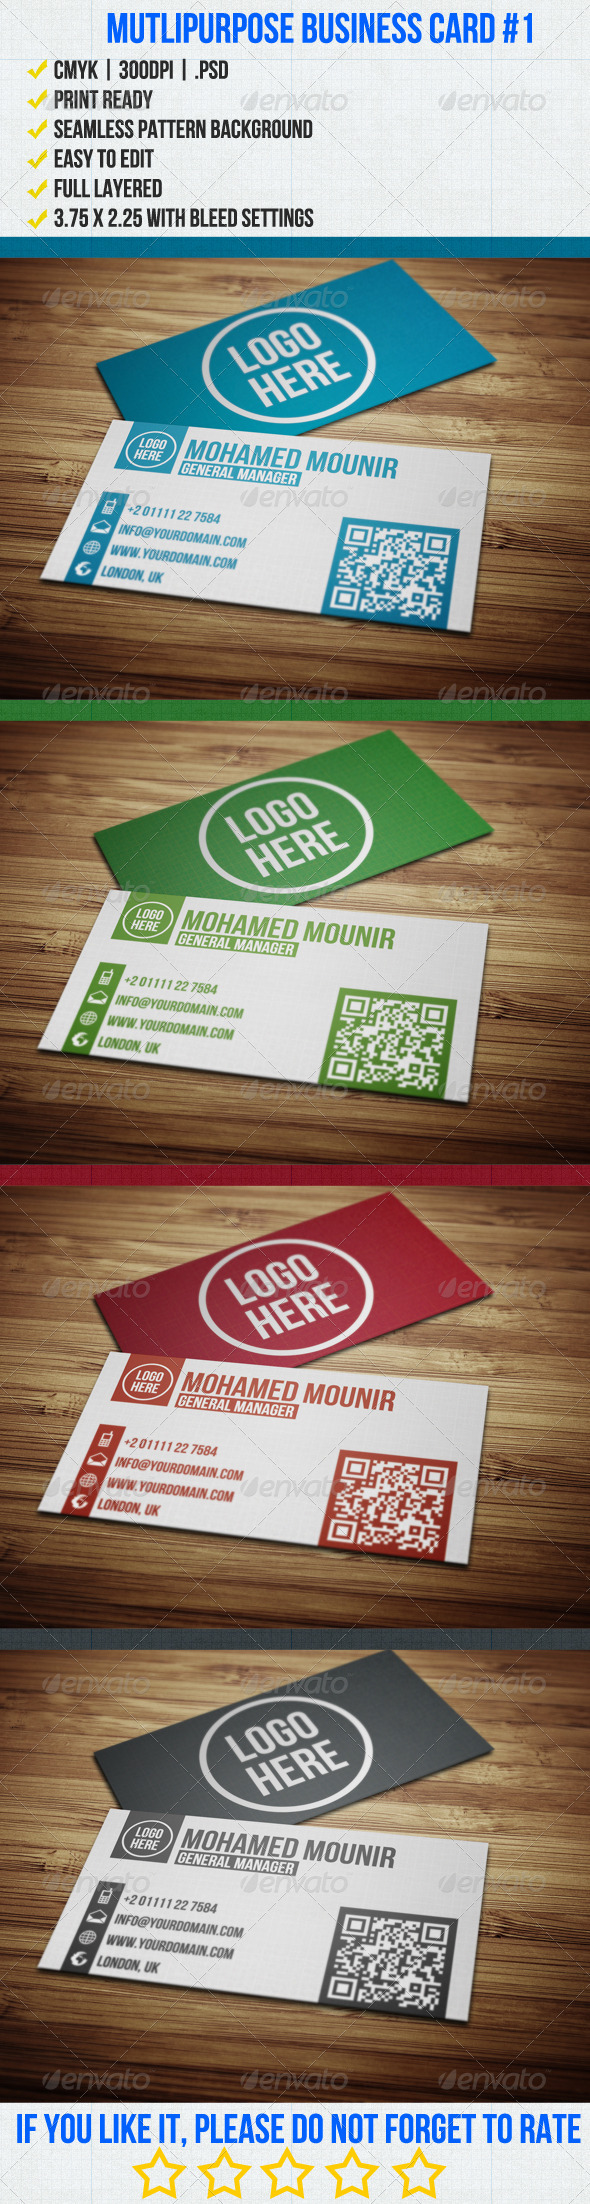 GraphicRiver Multipurpose Business Card 1 3576472